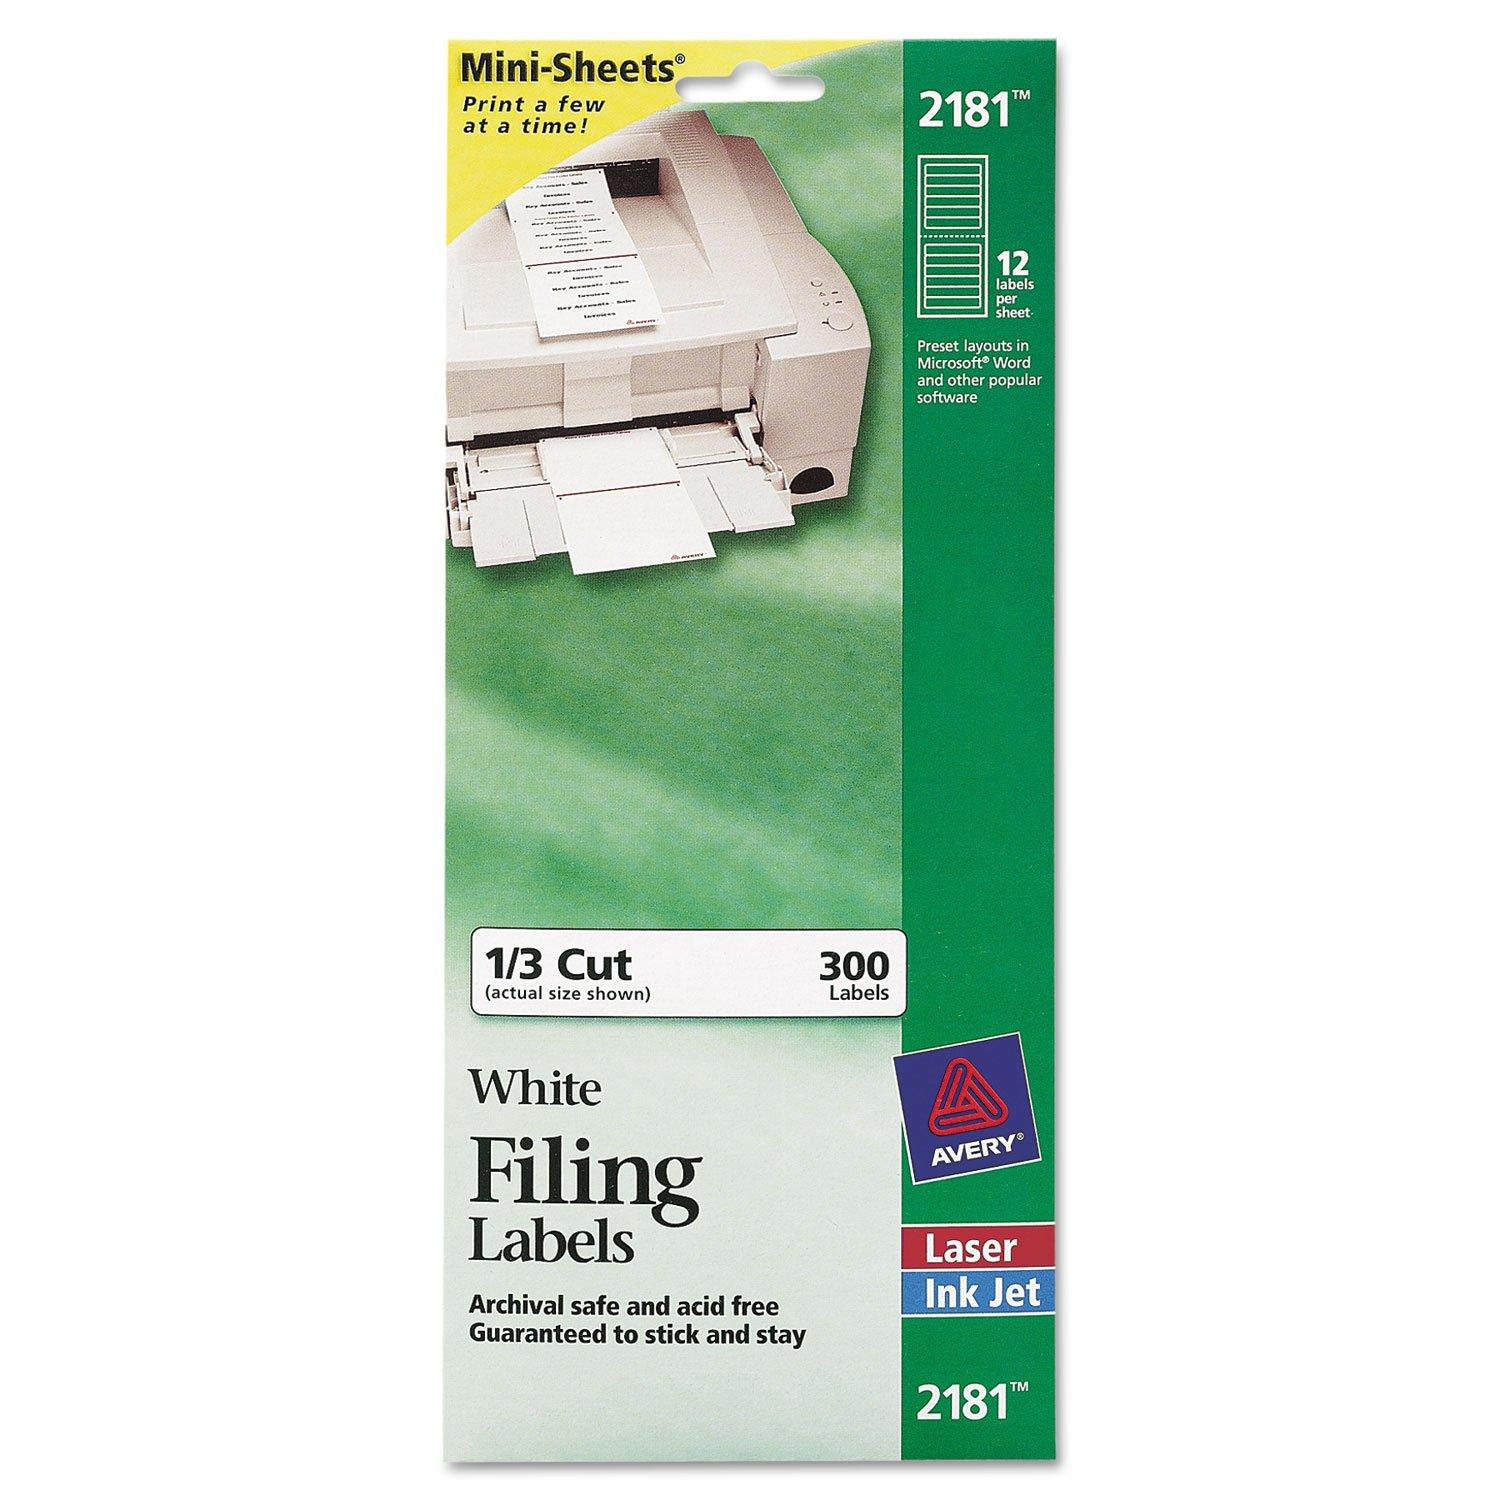 Avery Filing Labels Template 2181